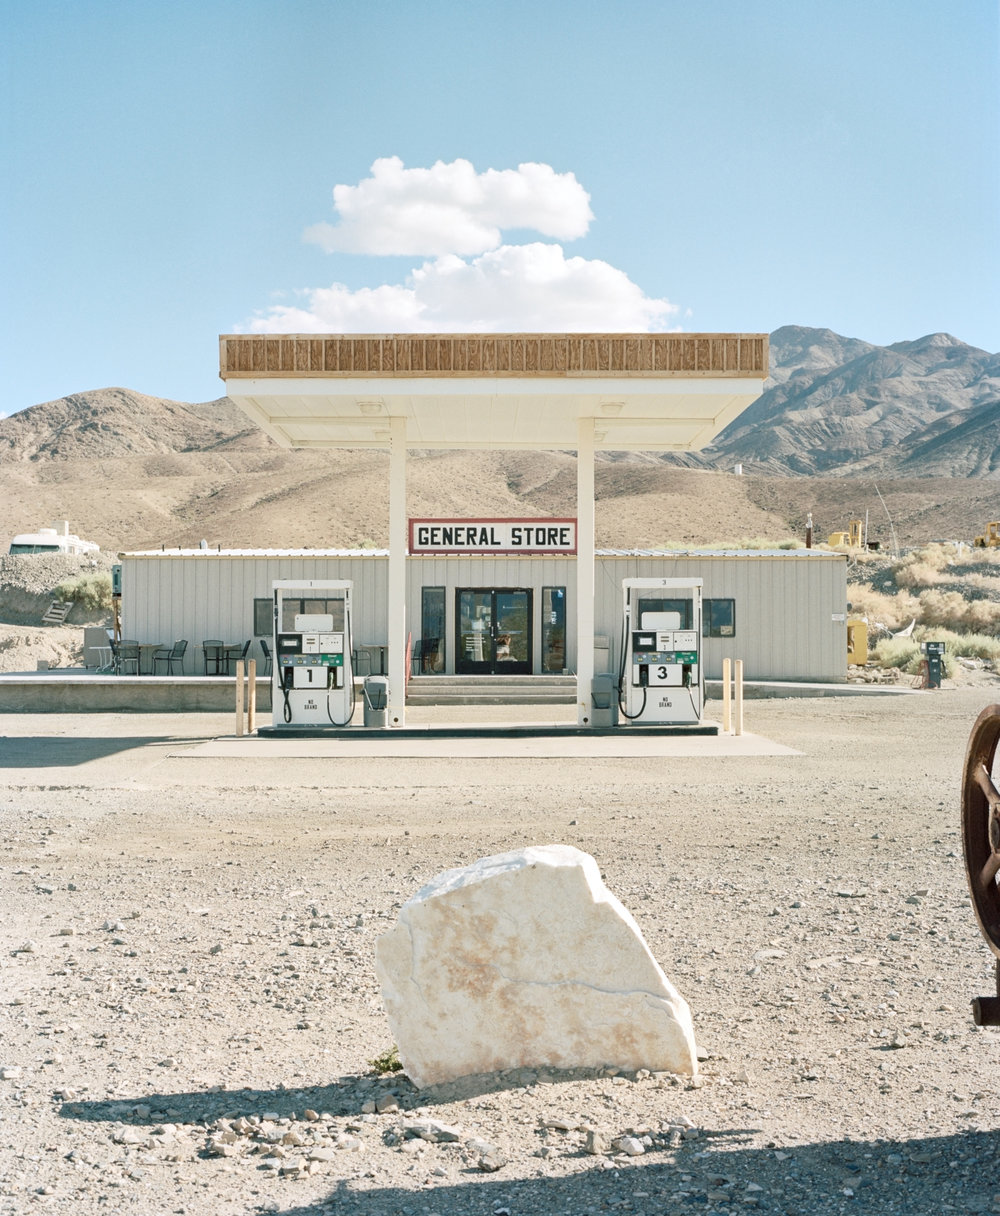 Cathy_USA_General store in Death Valley 001.jpg